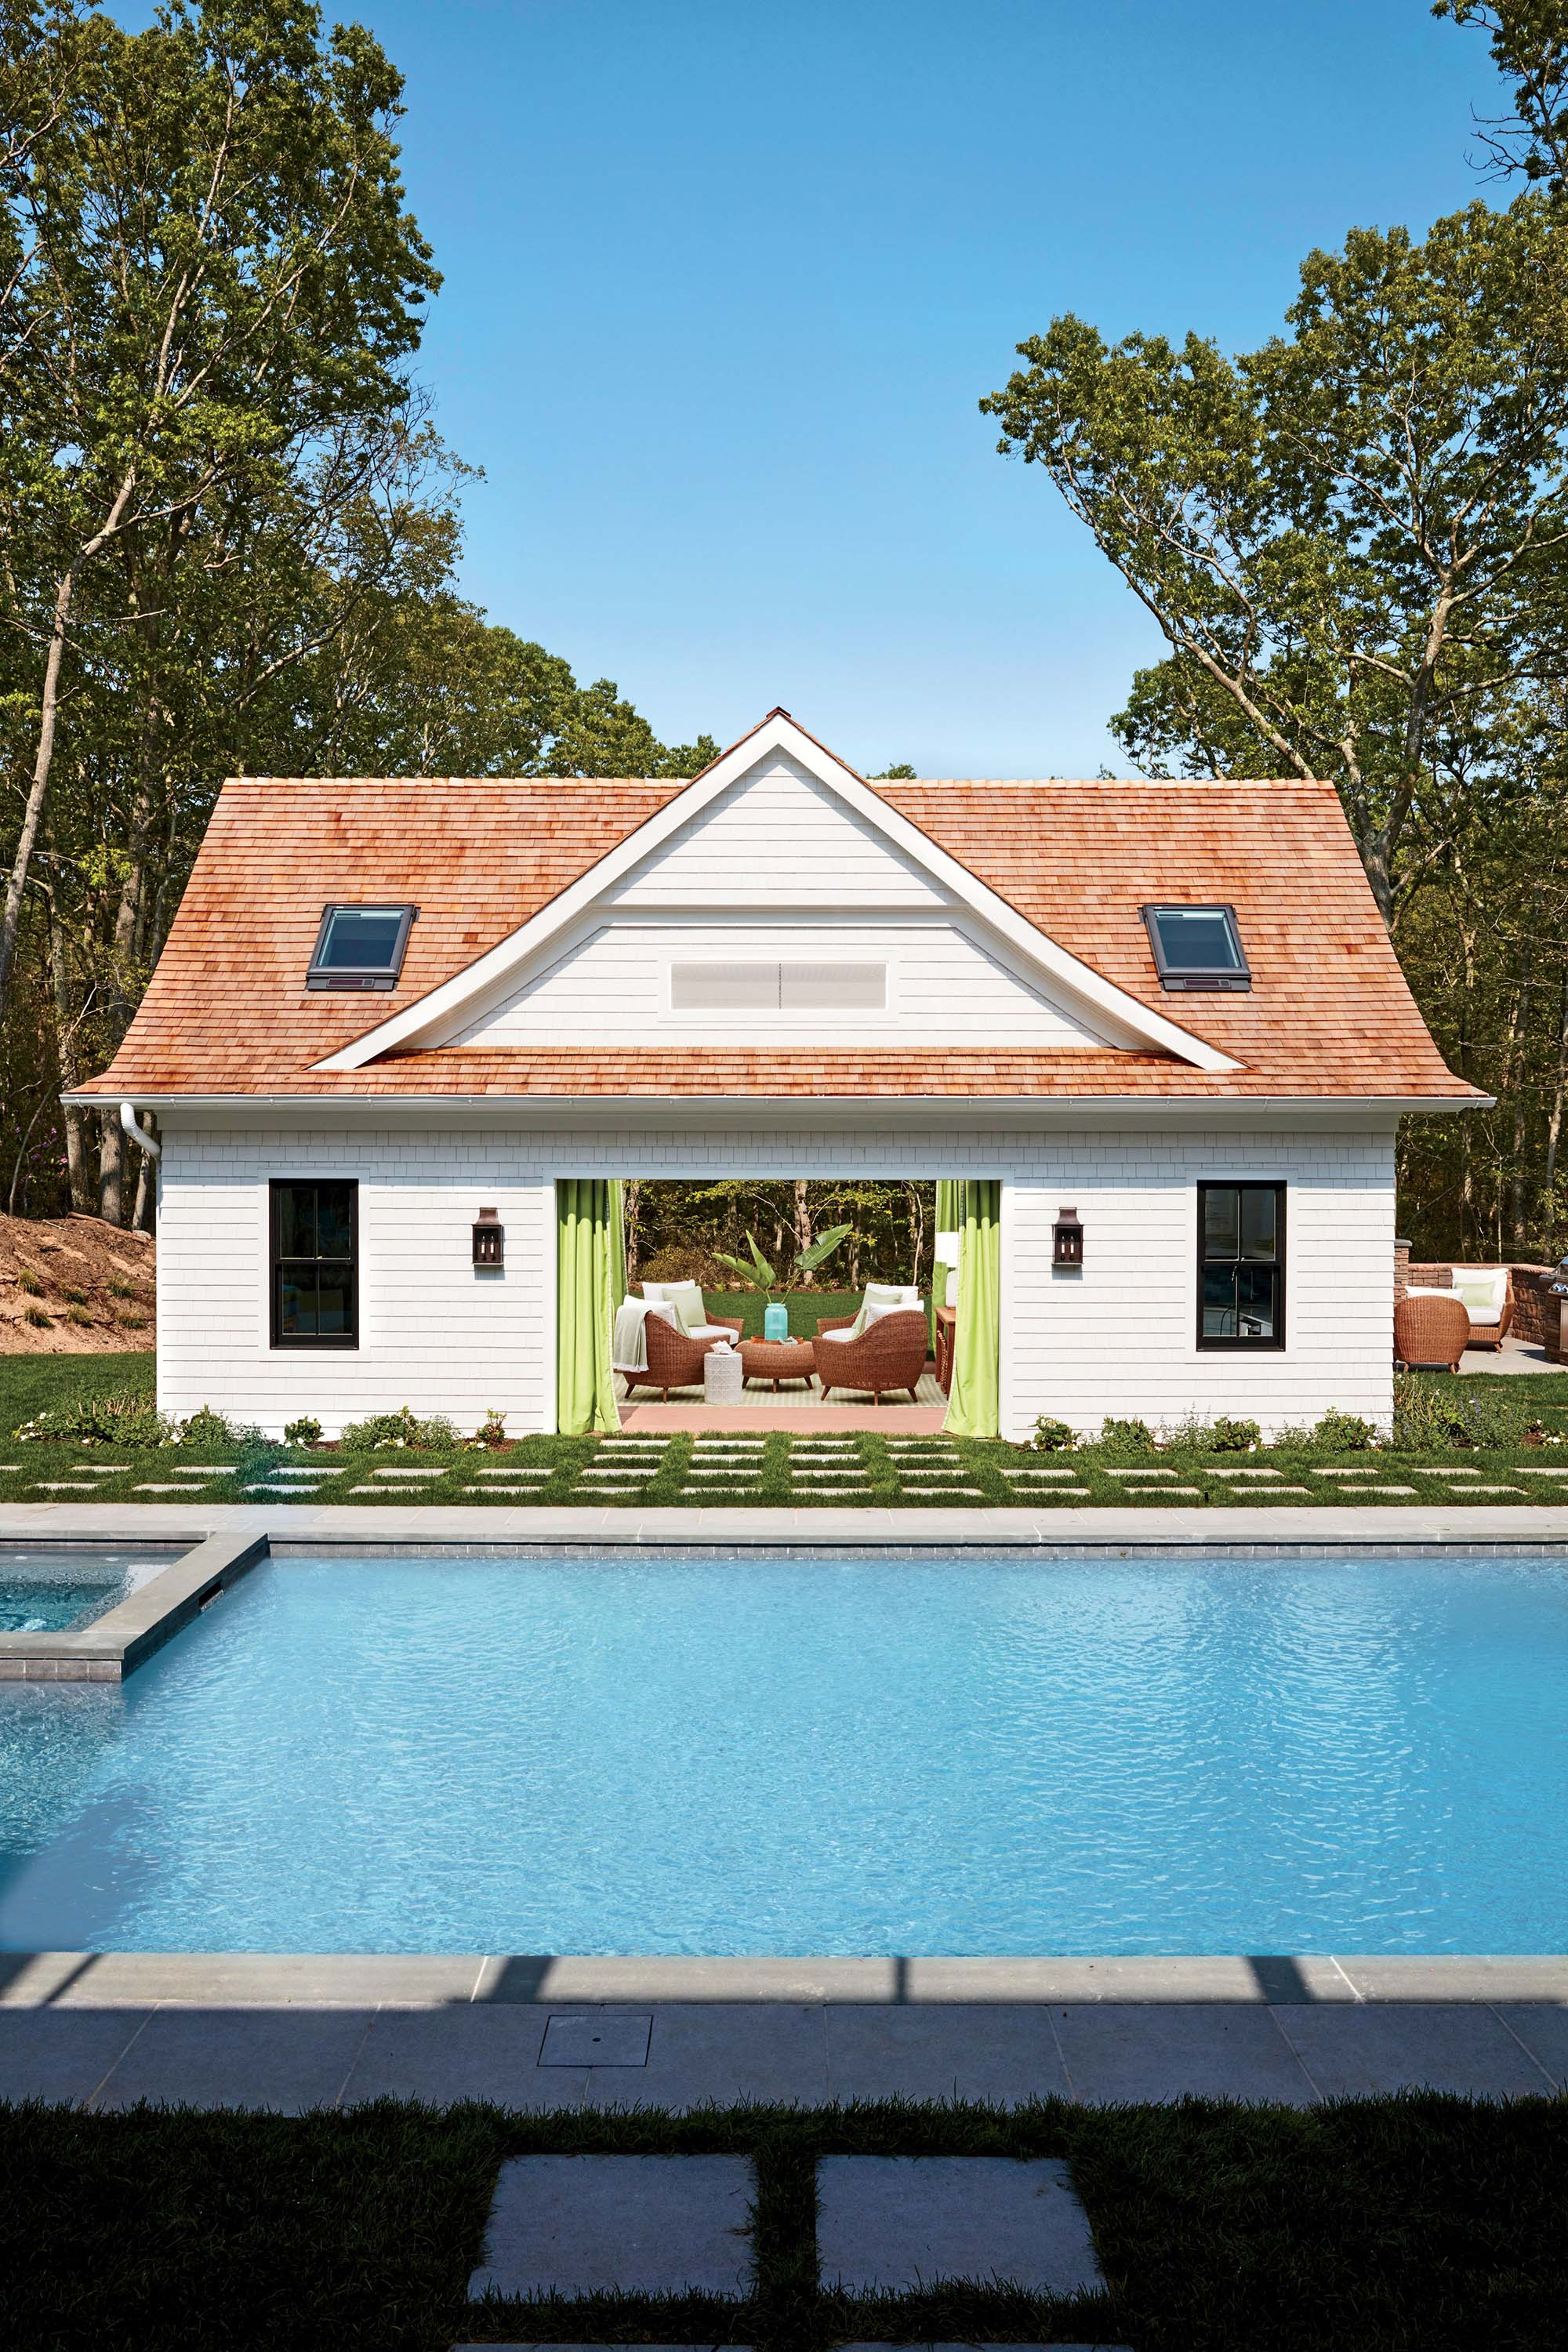 beautiful pool house style white siding french doors green curtains pass through design cedar shake shingles